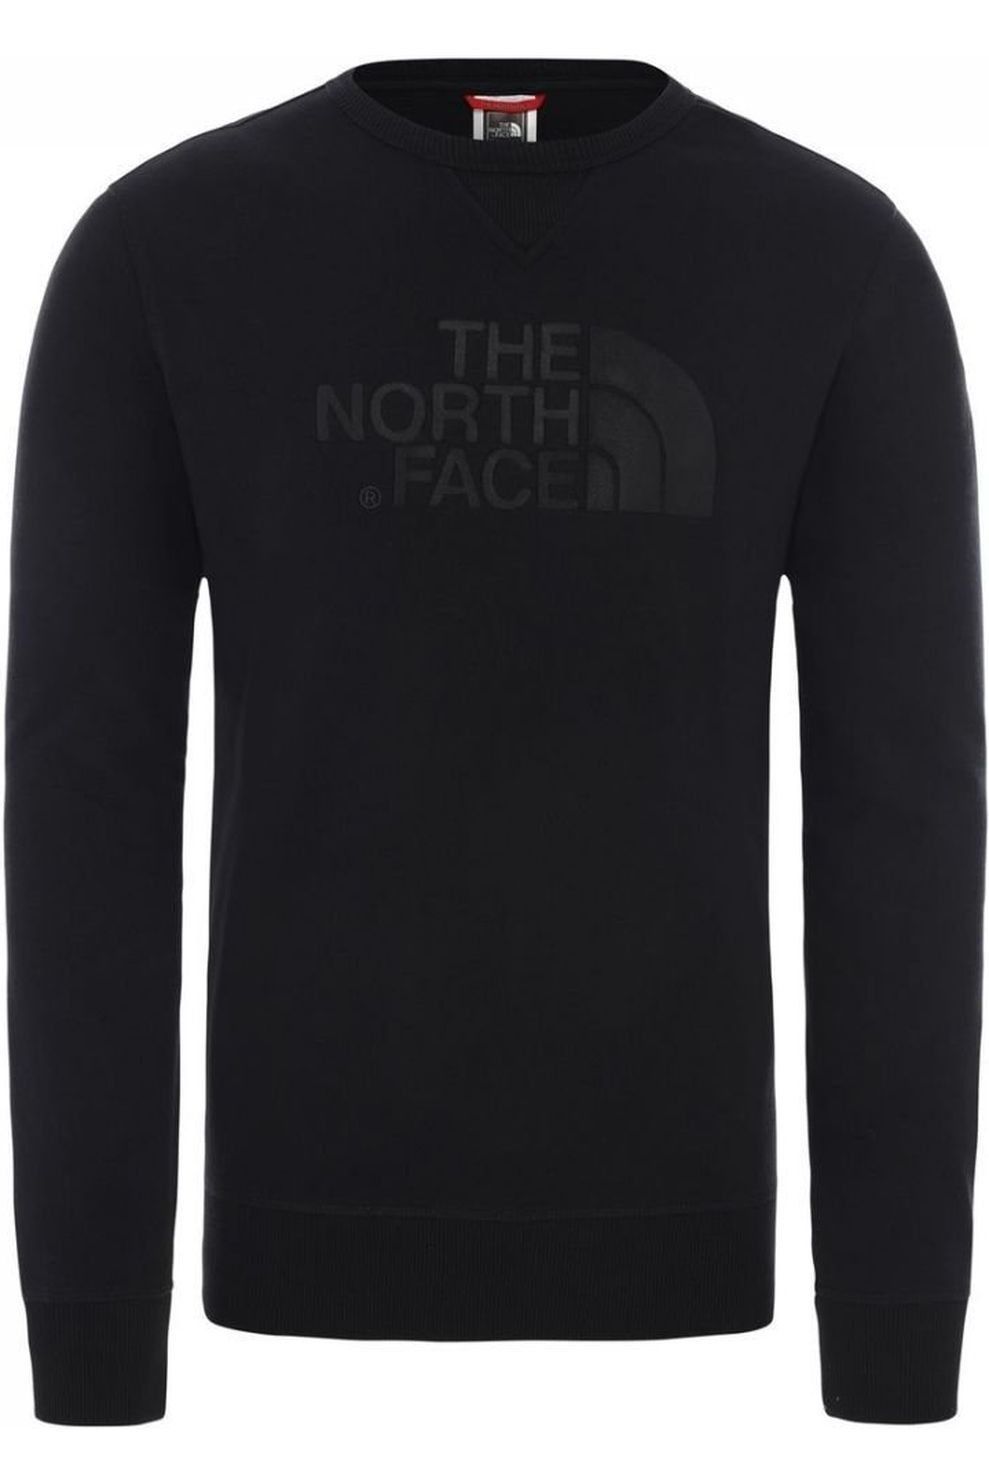 The North Face Trui Drew Peak Crew Light voor heren – Zwart – Maat: M